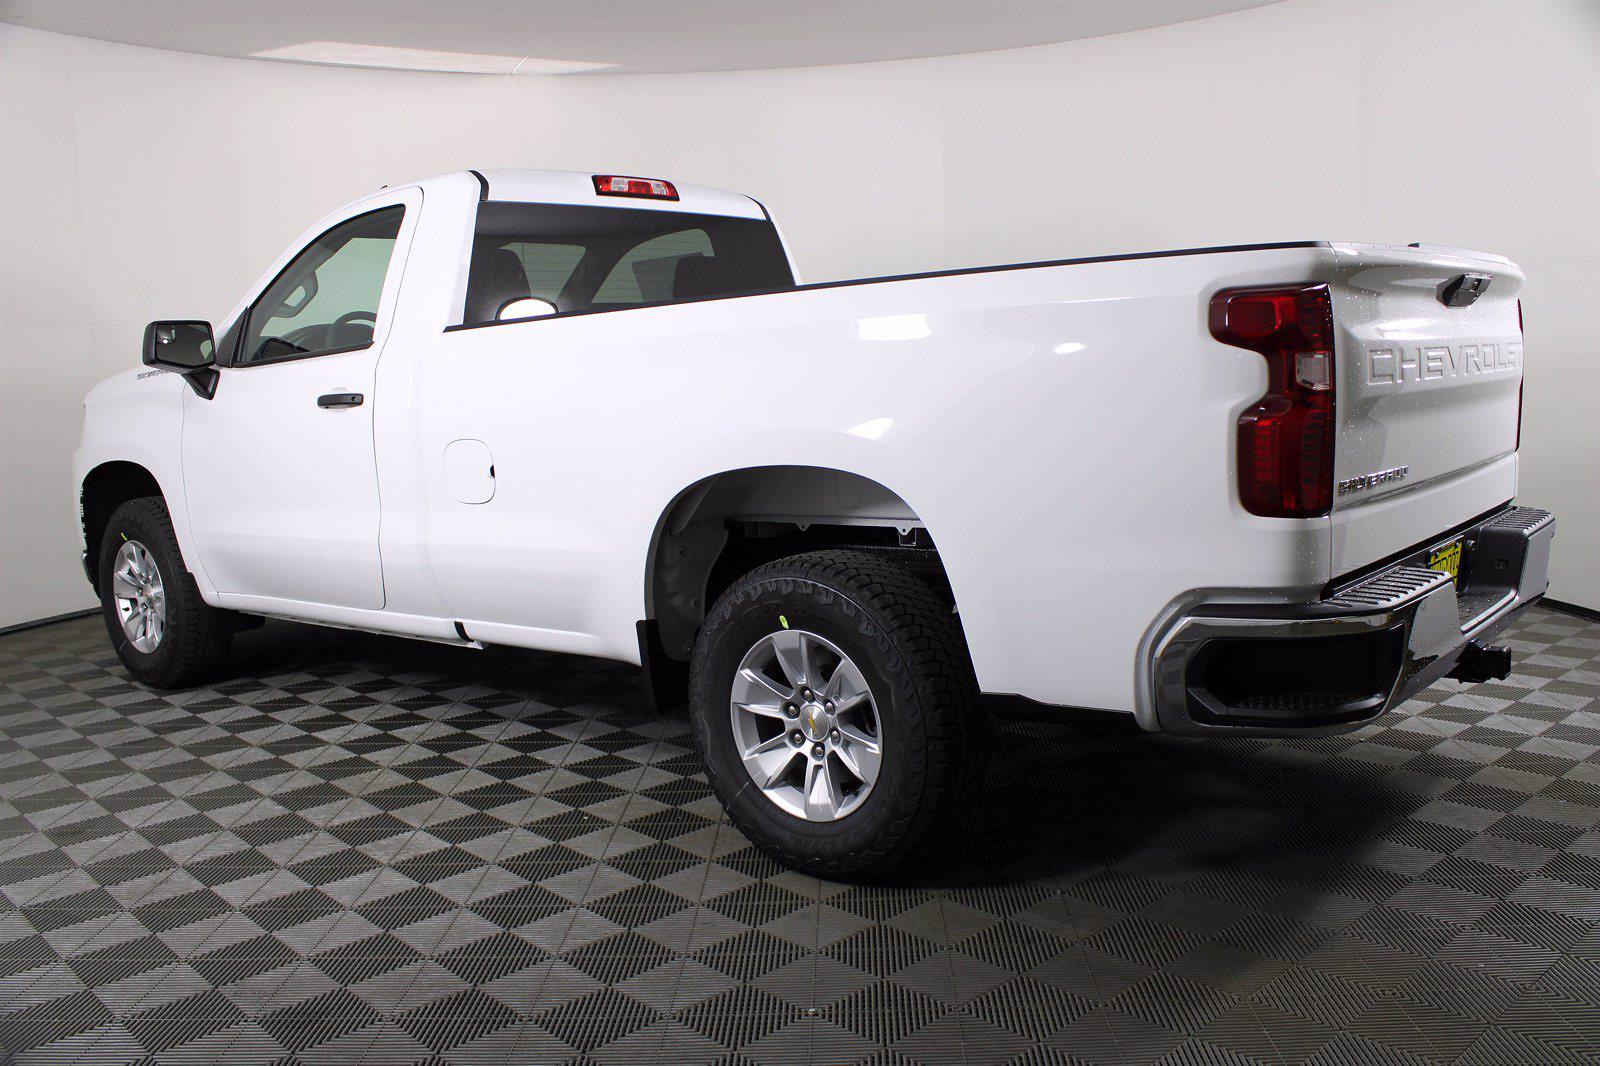 2021 Chevrolet Silverado 1500 Regular Cab 4x2, Pickup #D110764 - photo 1